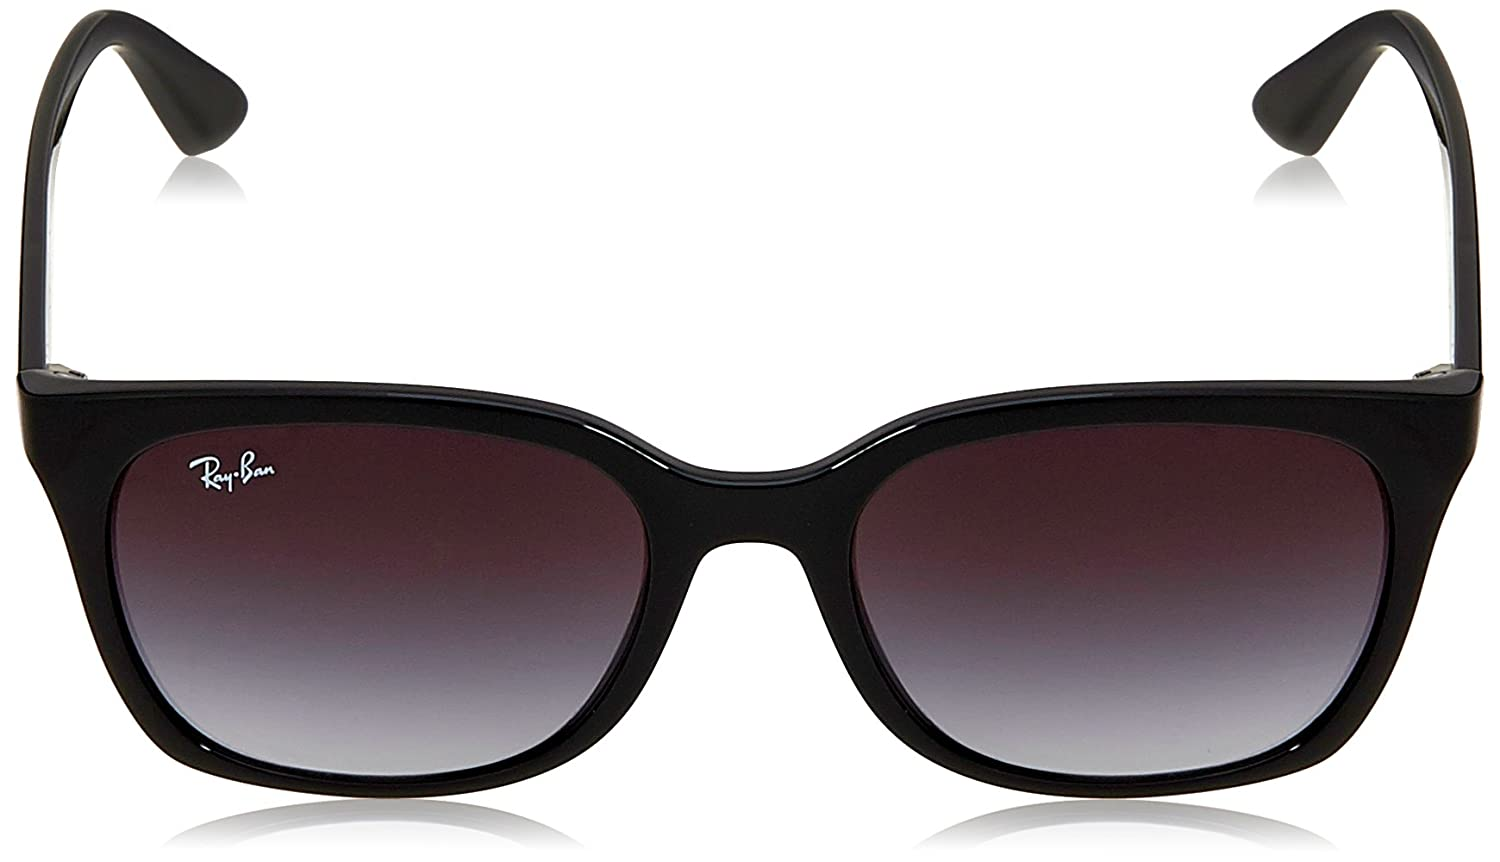 Up to 40% off On Ray-Ban Sunglasses By Amazon | Ray-Ban Gradient Square Sunglasses (0RB7060I601/8G54) @ Rs.2,389